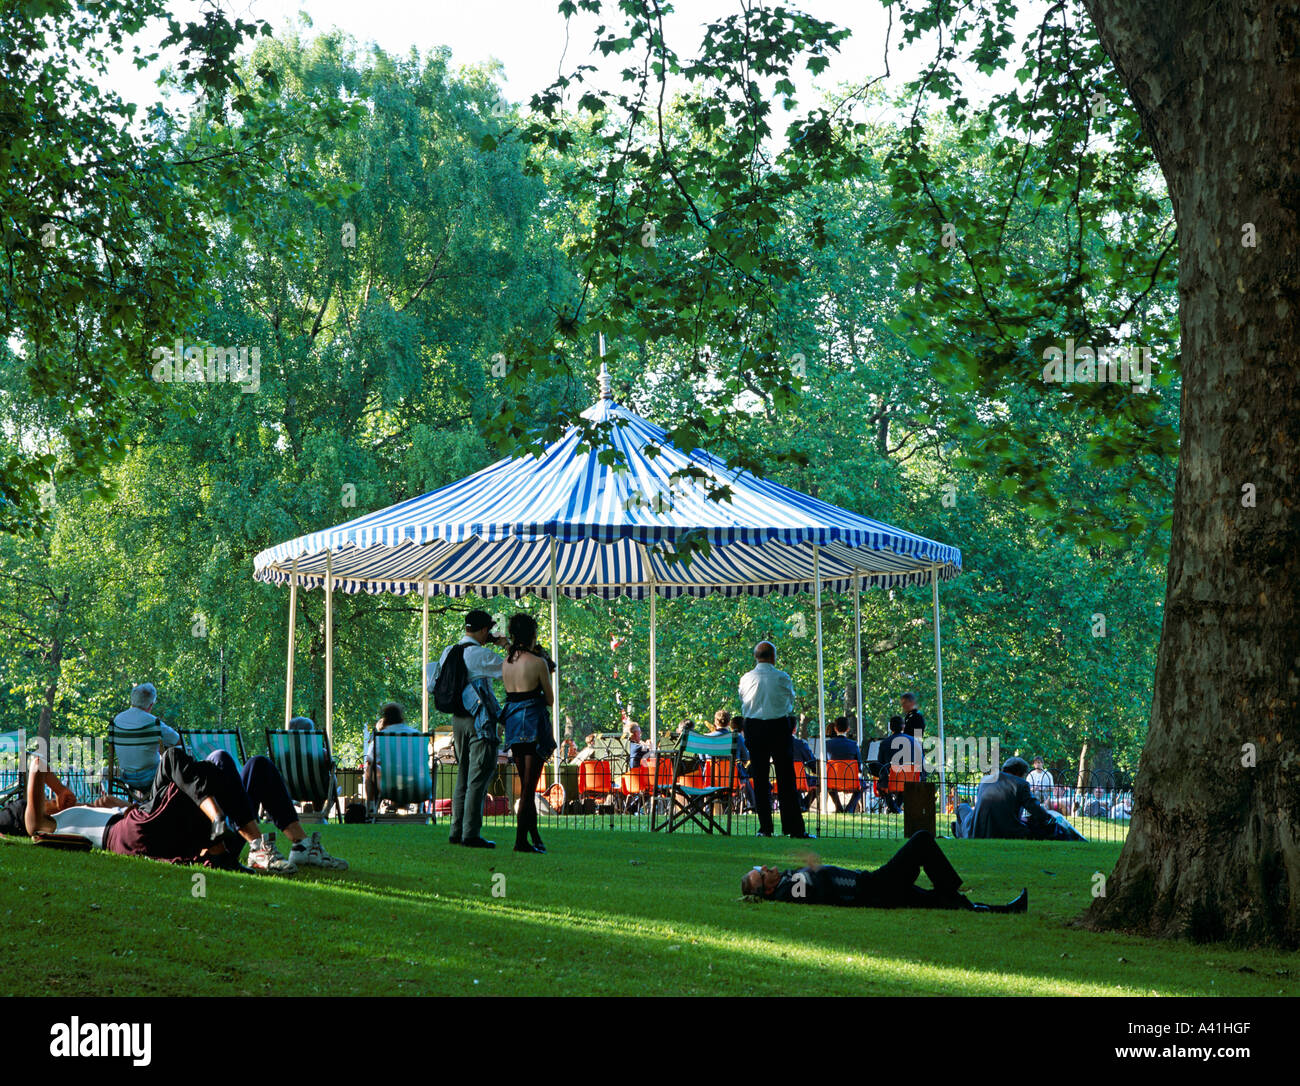 Summer Bandstand St.James Park London U.K. Europe - Stock Image